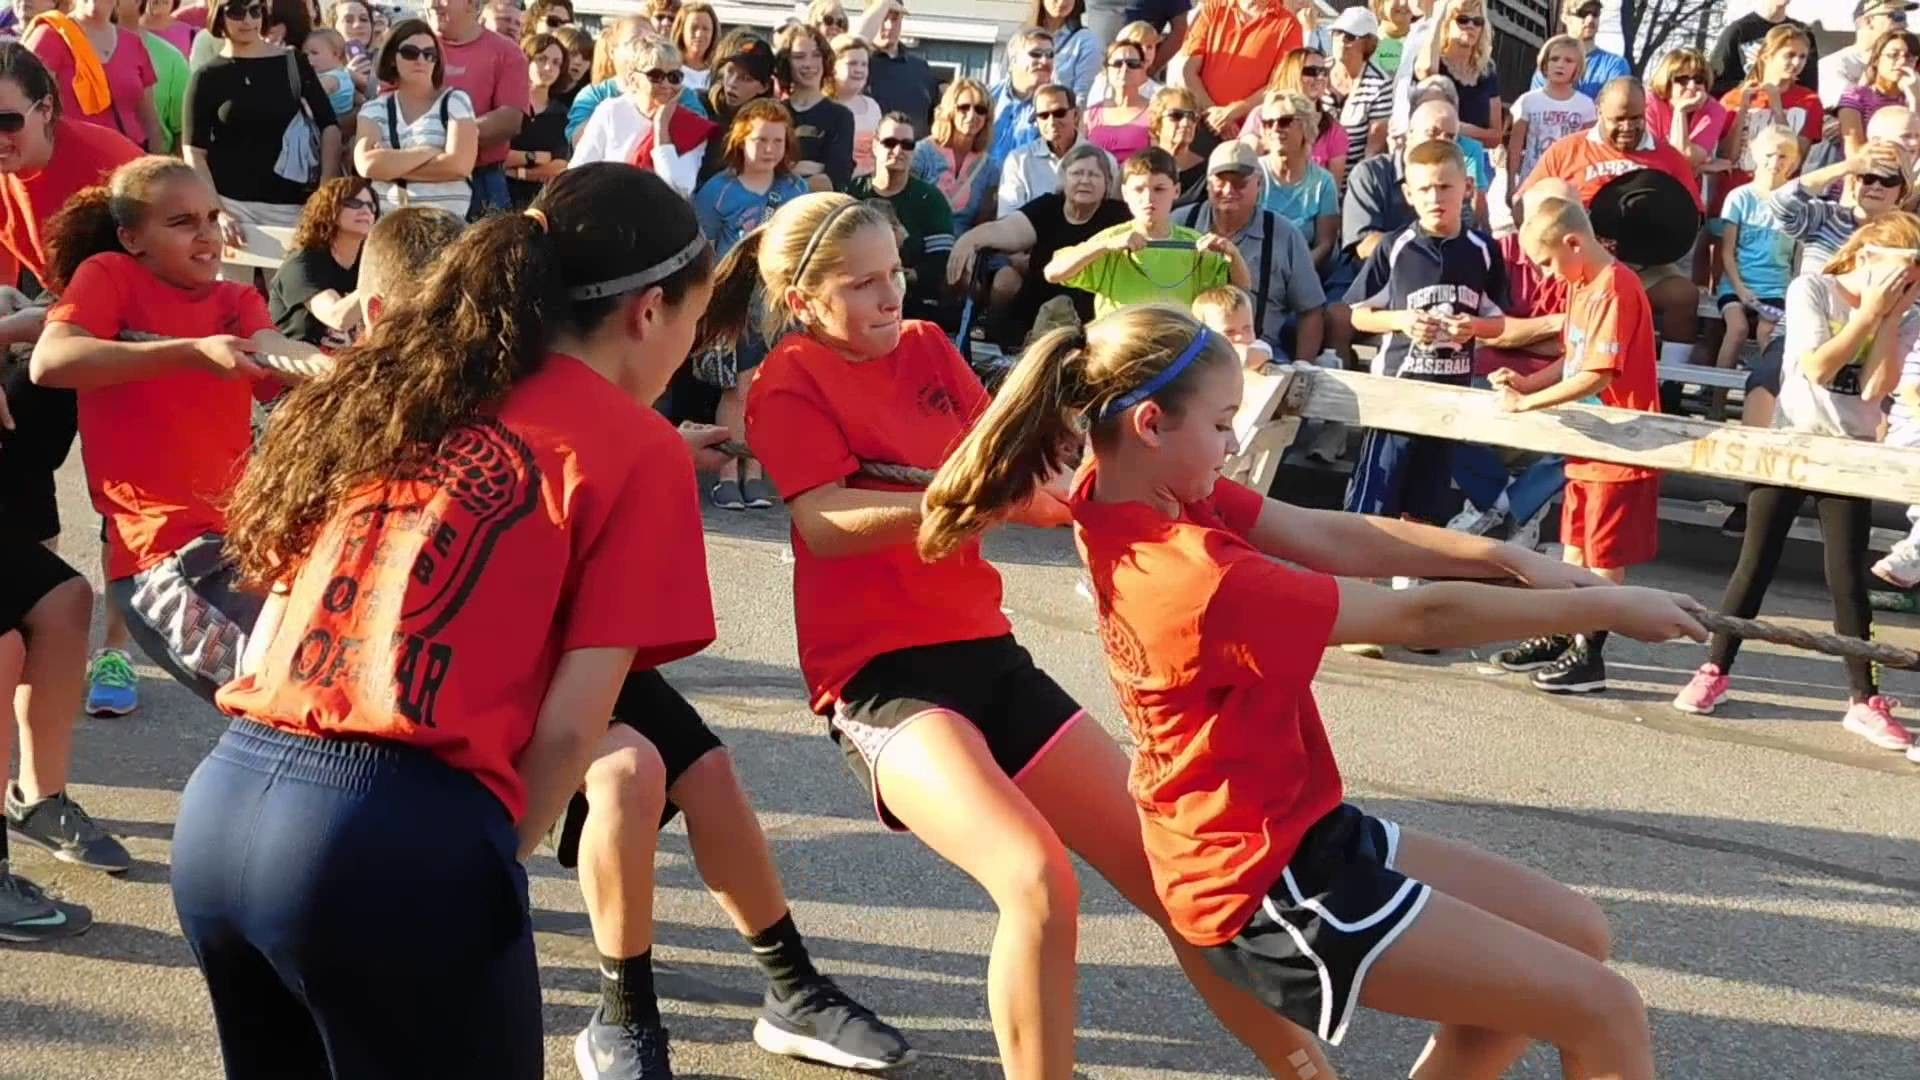 Res: 1920x1080, 2015 Evansville Fall Festival - October 6 - Tug of War - Helfrich Park VS  Need Name of School